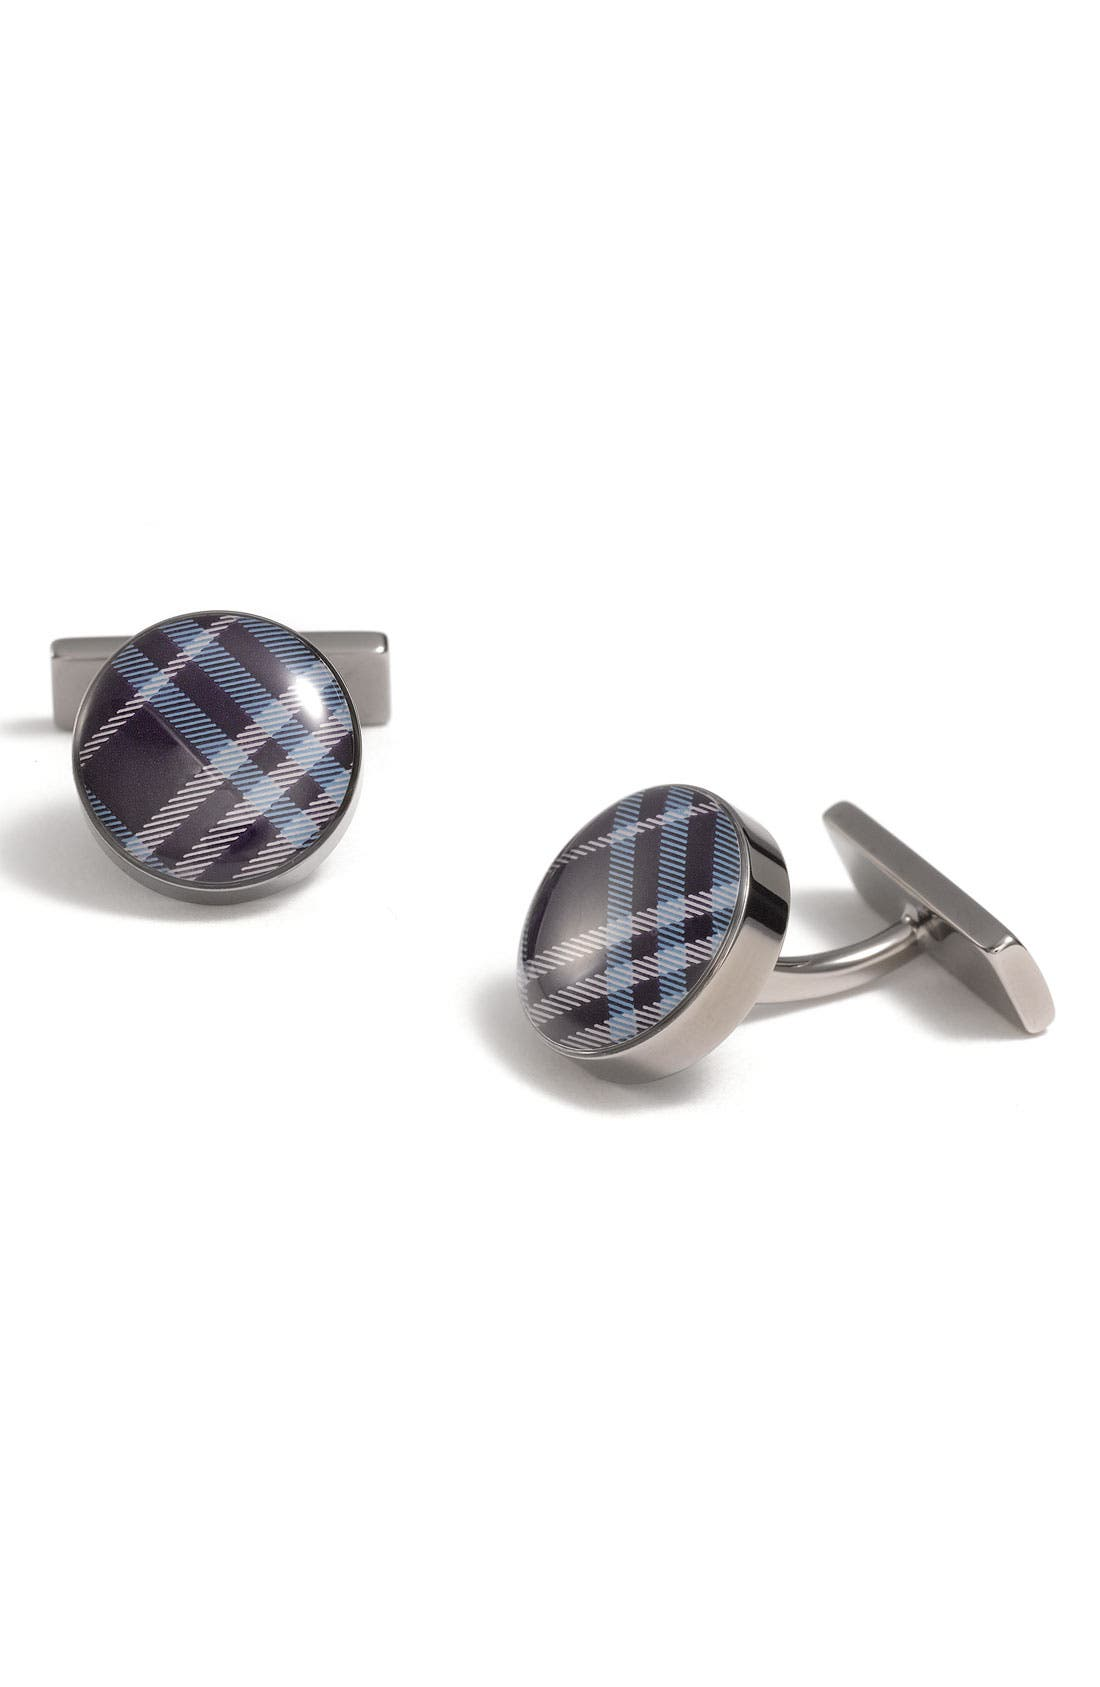 Alternate Image 1 Selected - Burberry Enameled Check Print Cuff Links